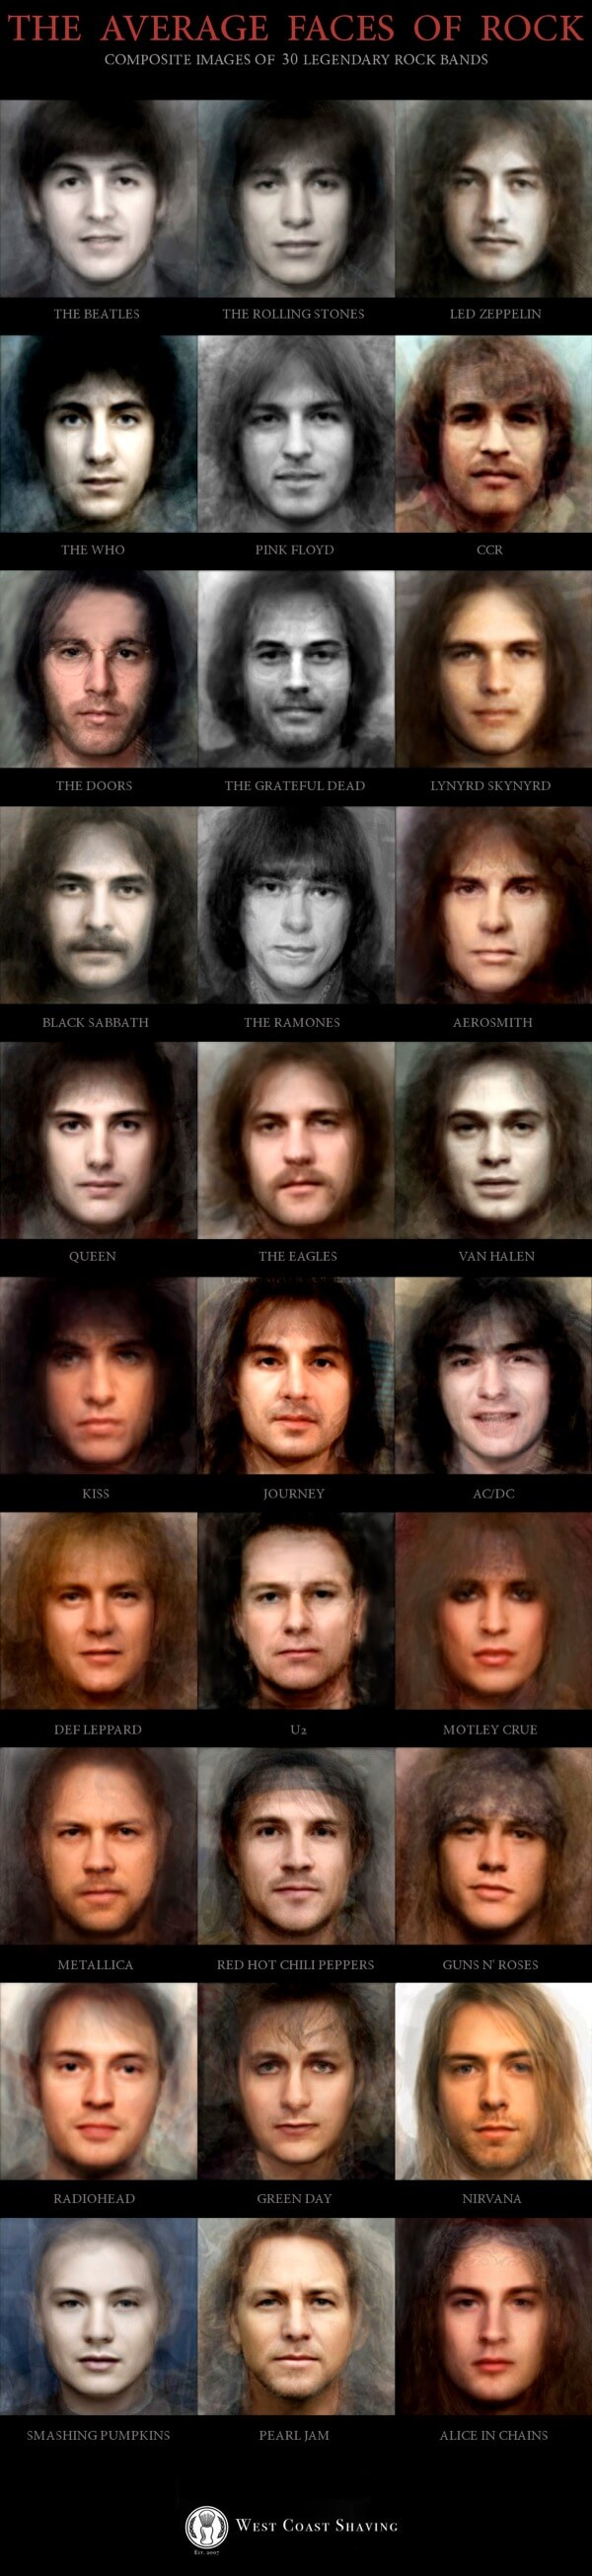 The Faces of Rock composite graphic